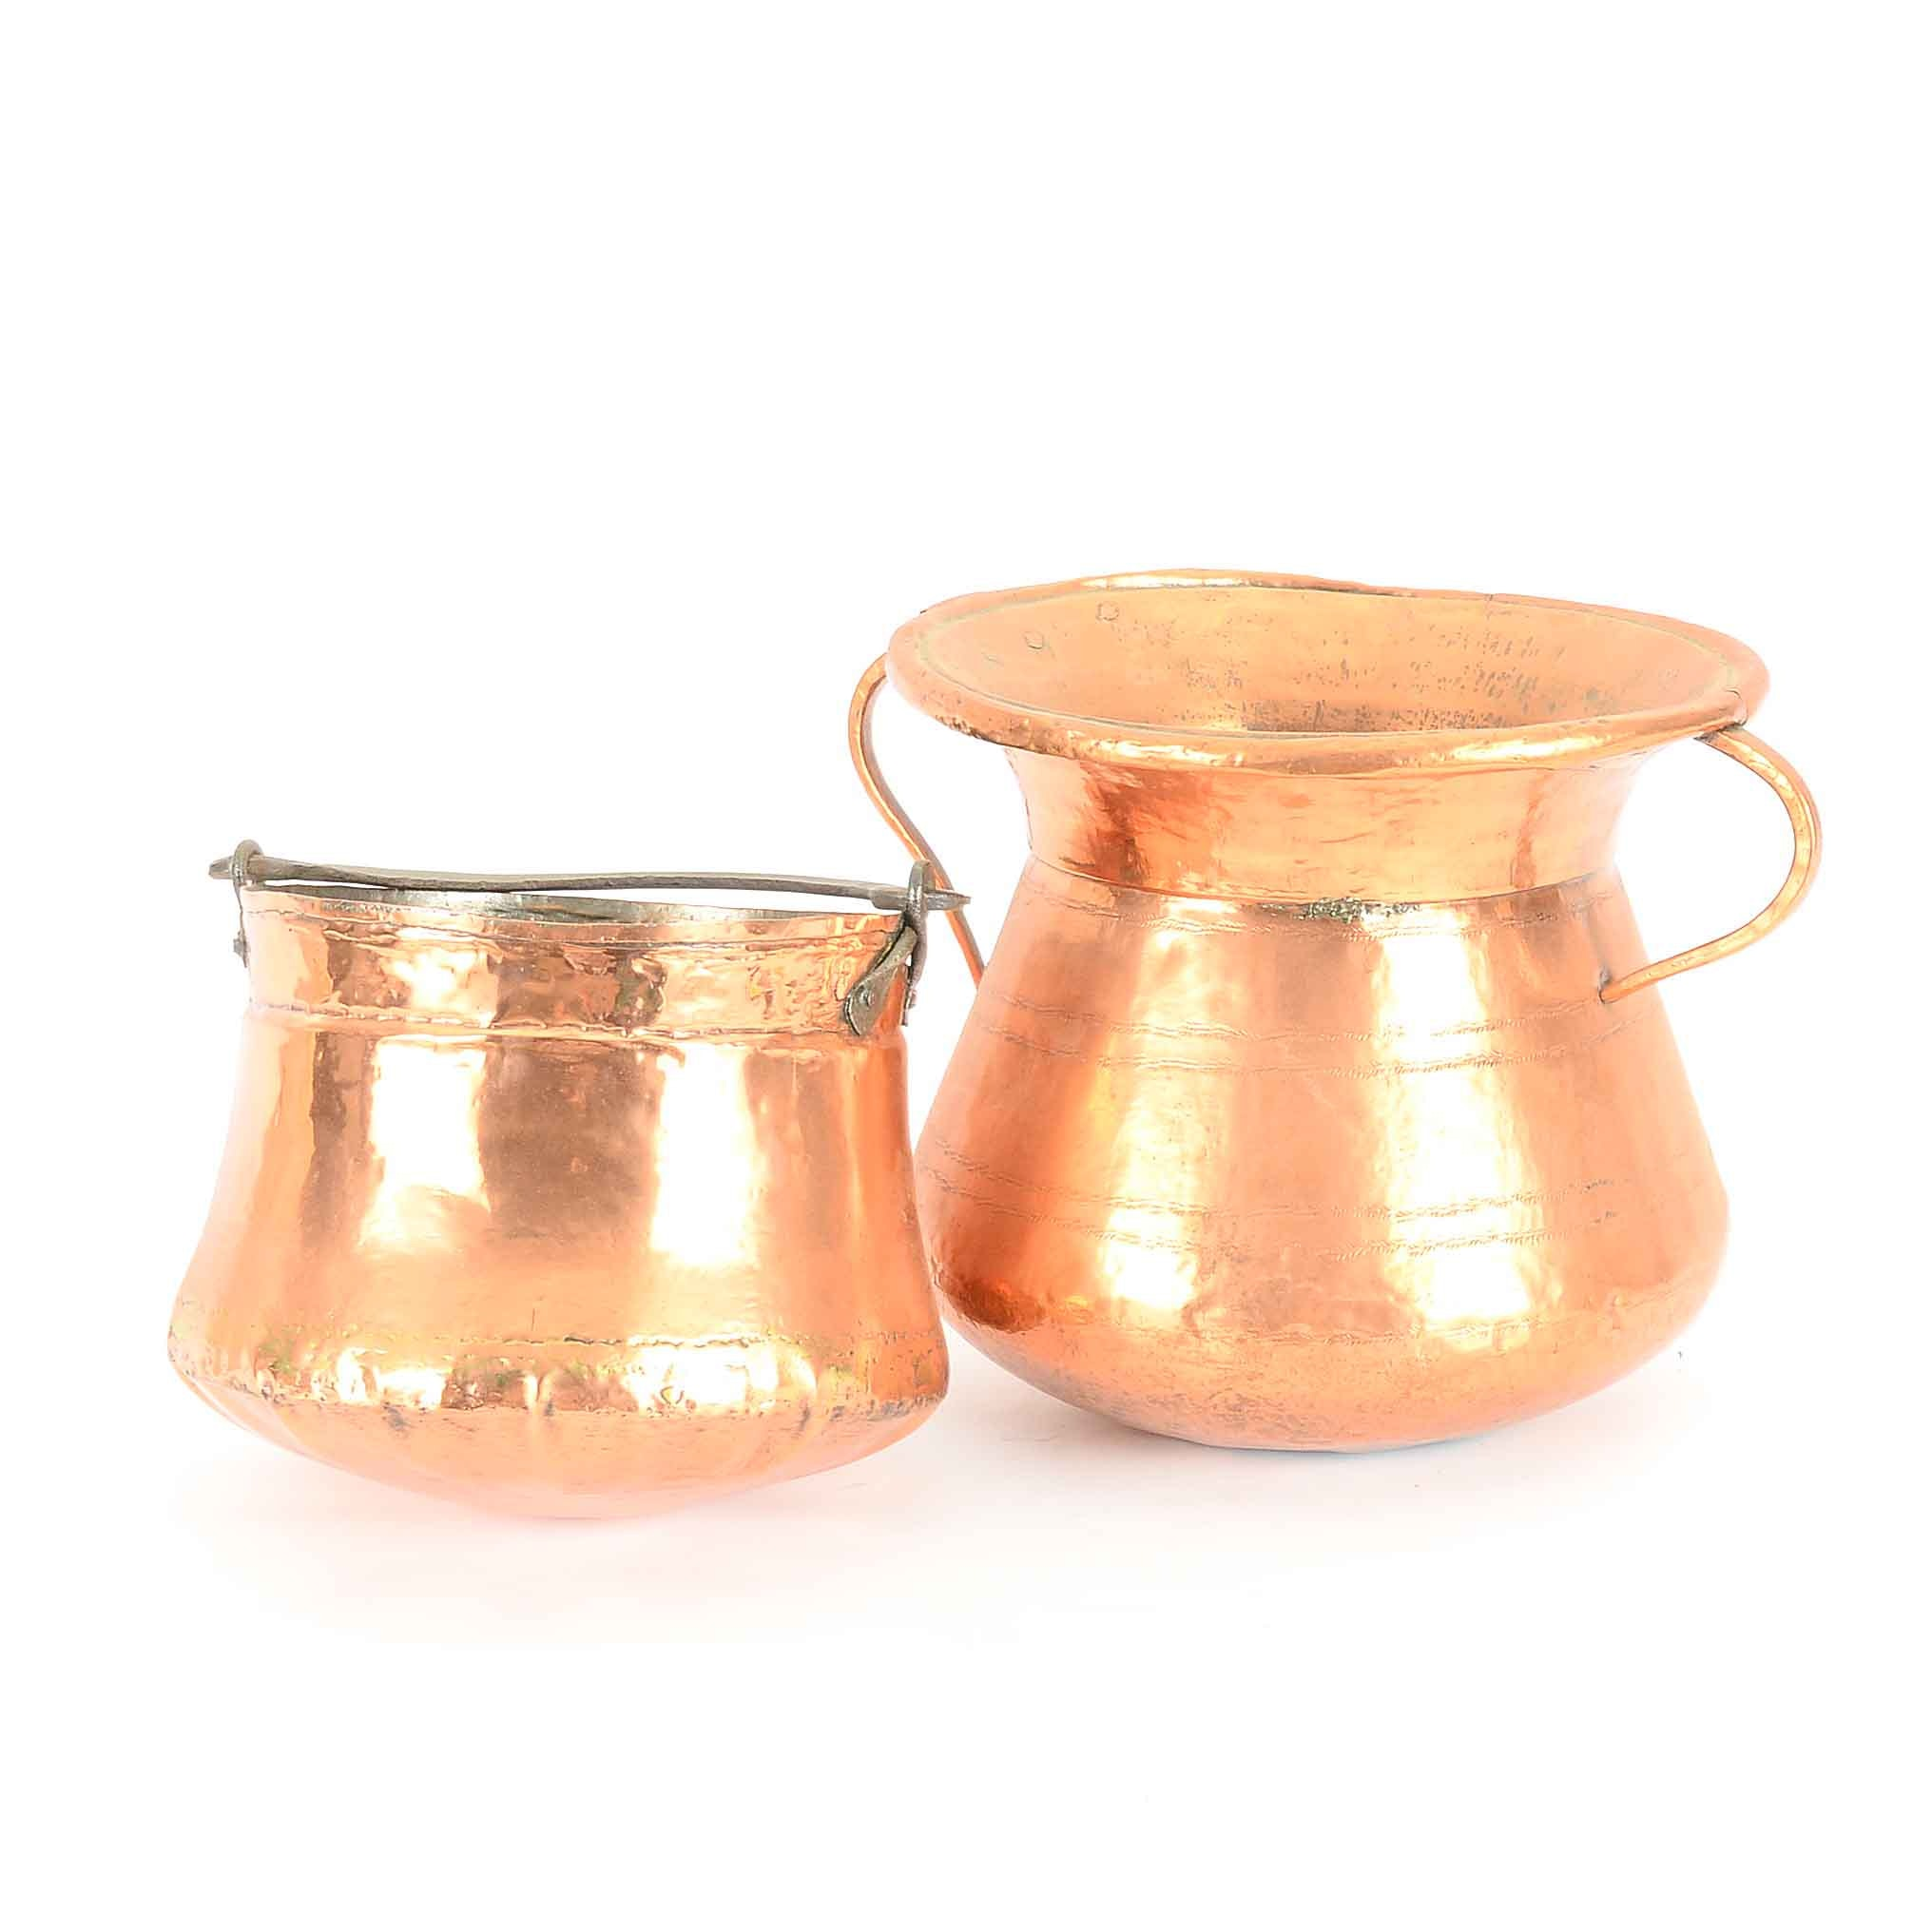 Pair of Copper Urns